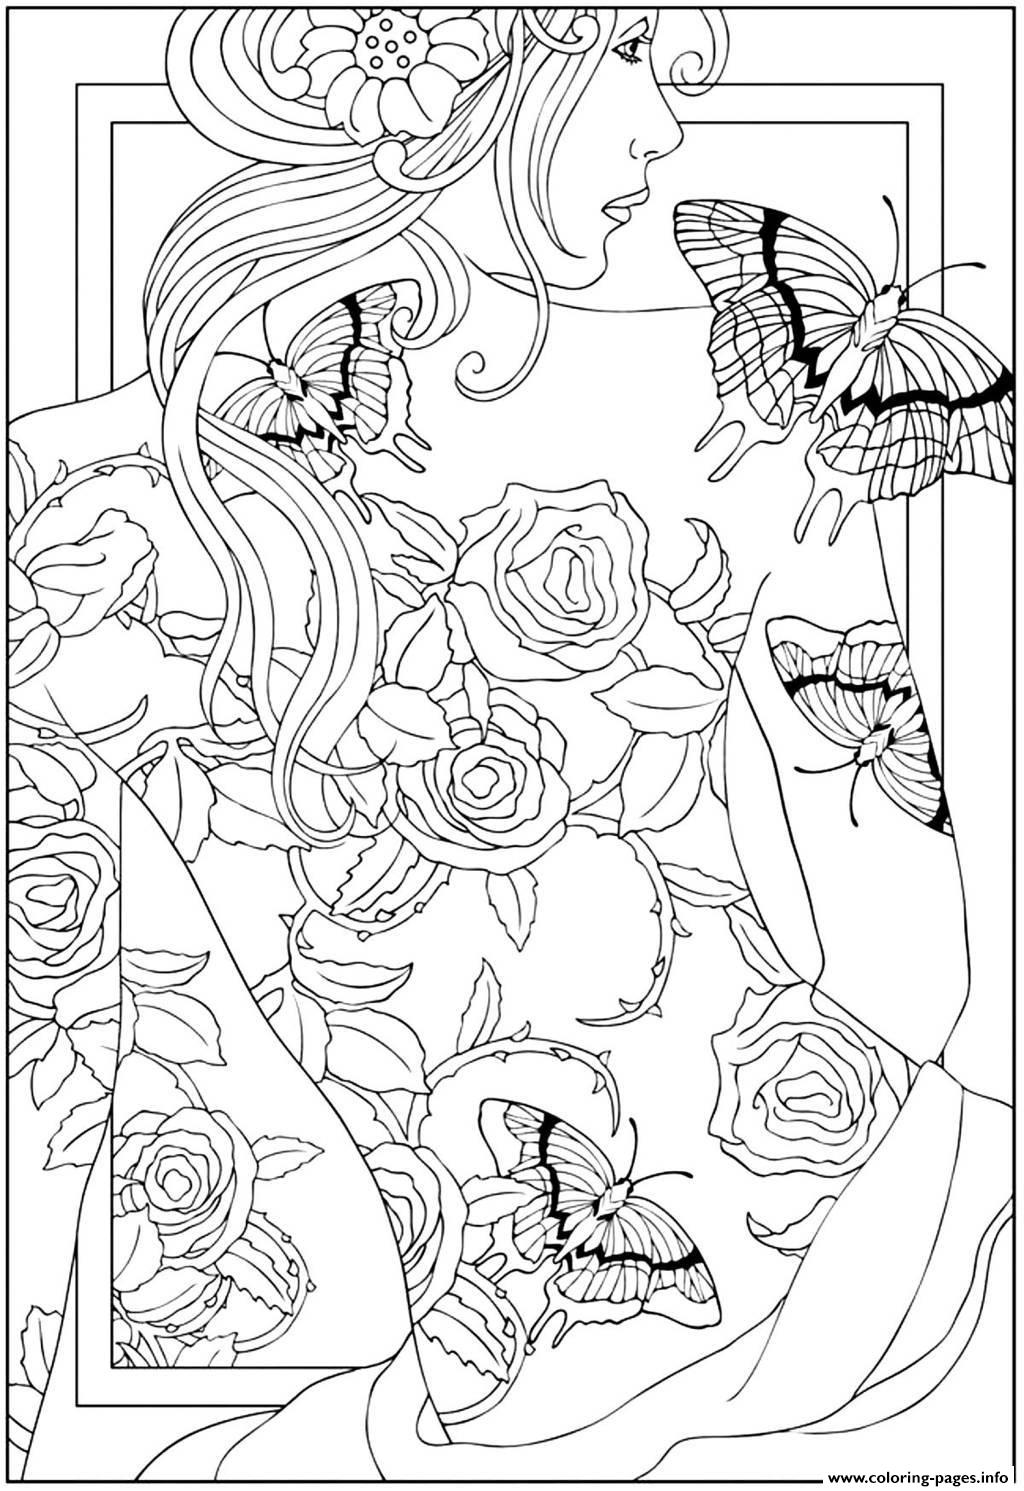 Adult Back Tattooed Woman coloring pages